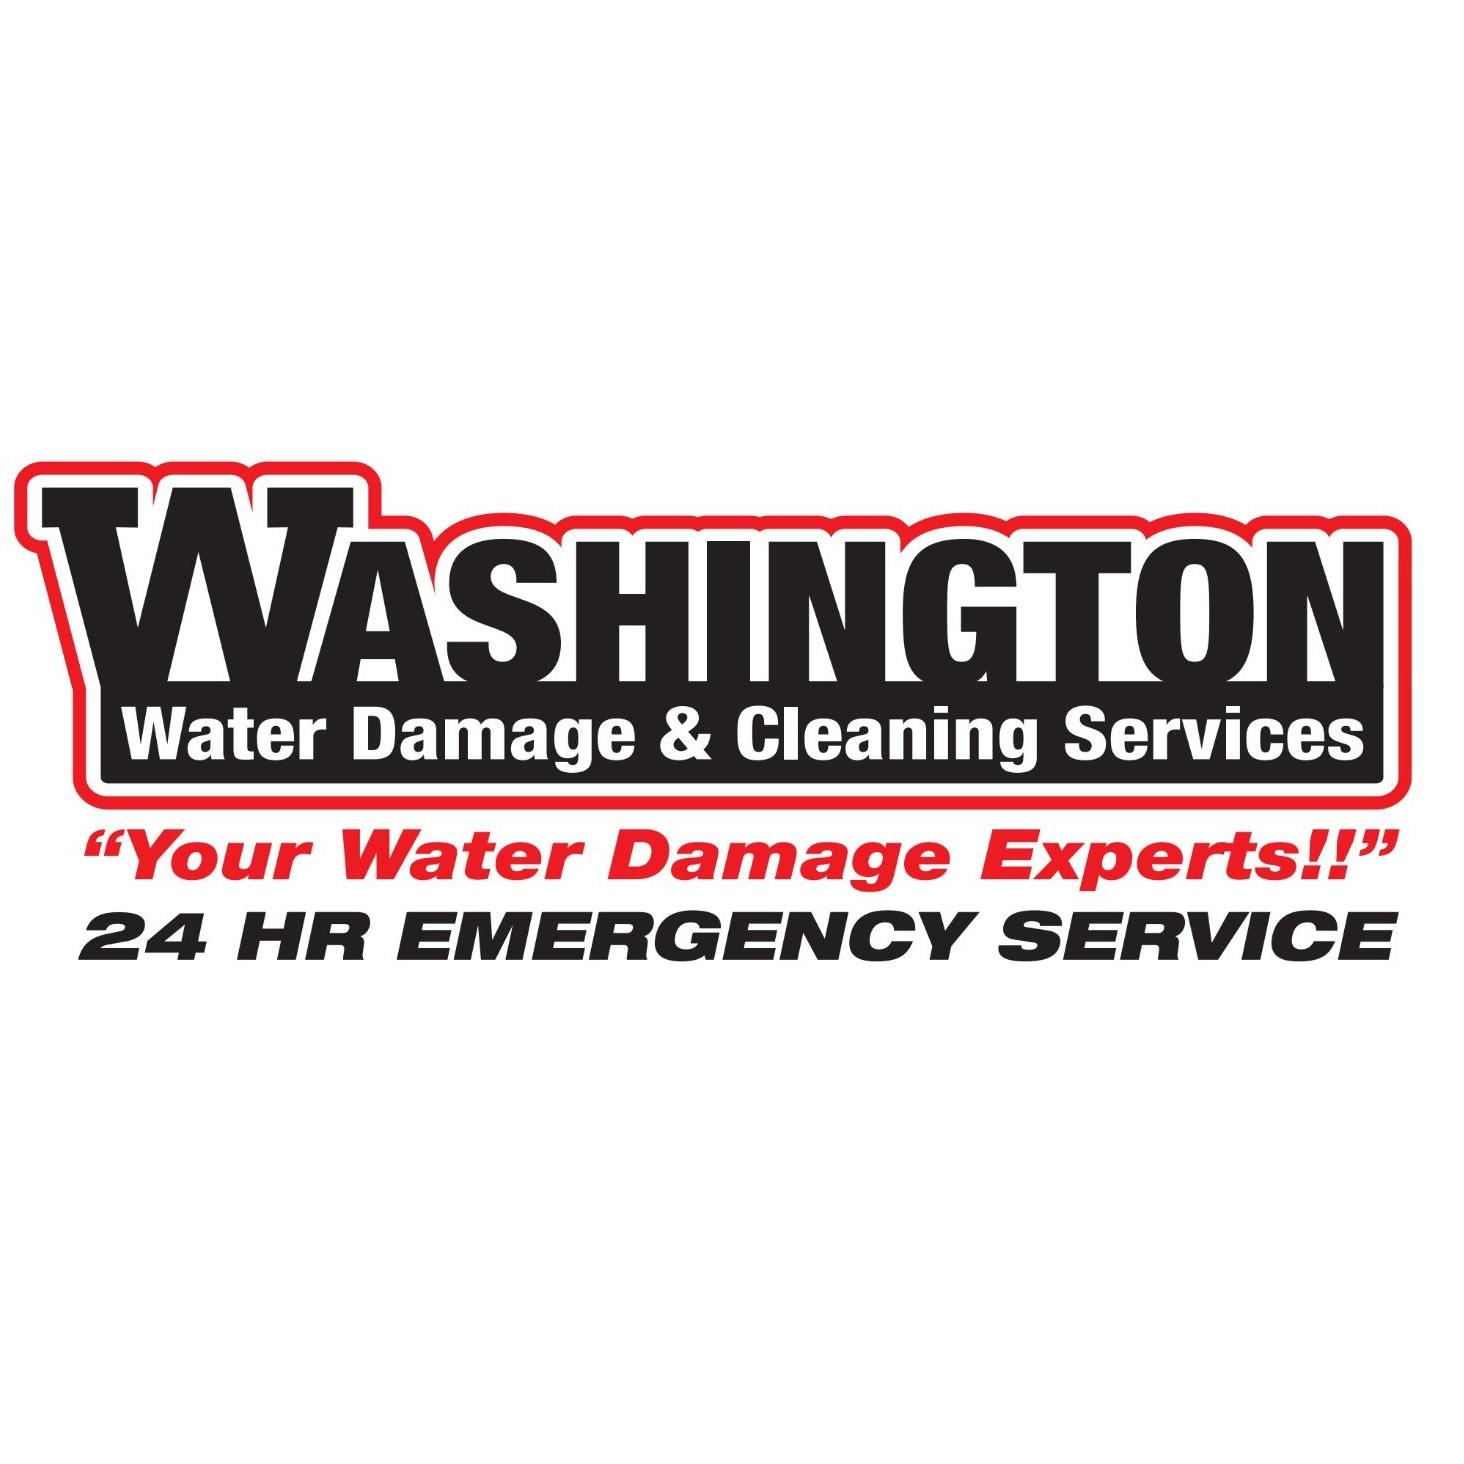 Washington Water Damage & Cleaning Services